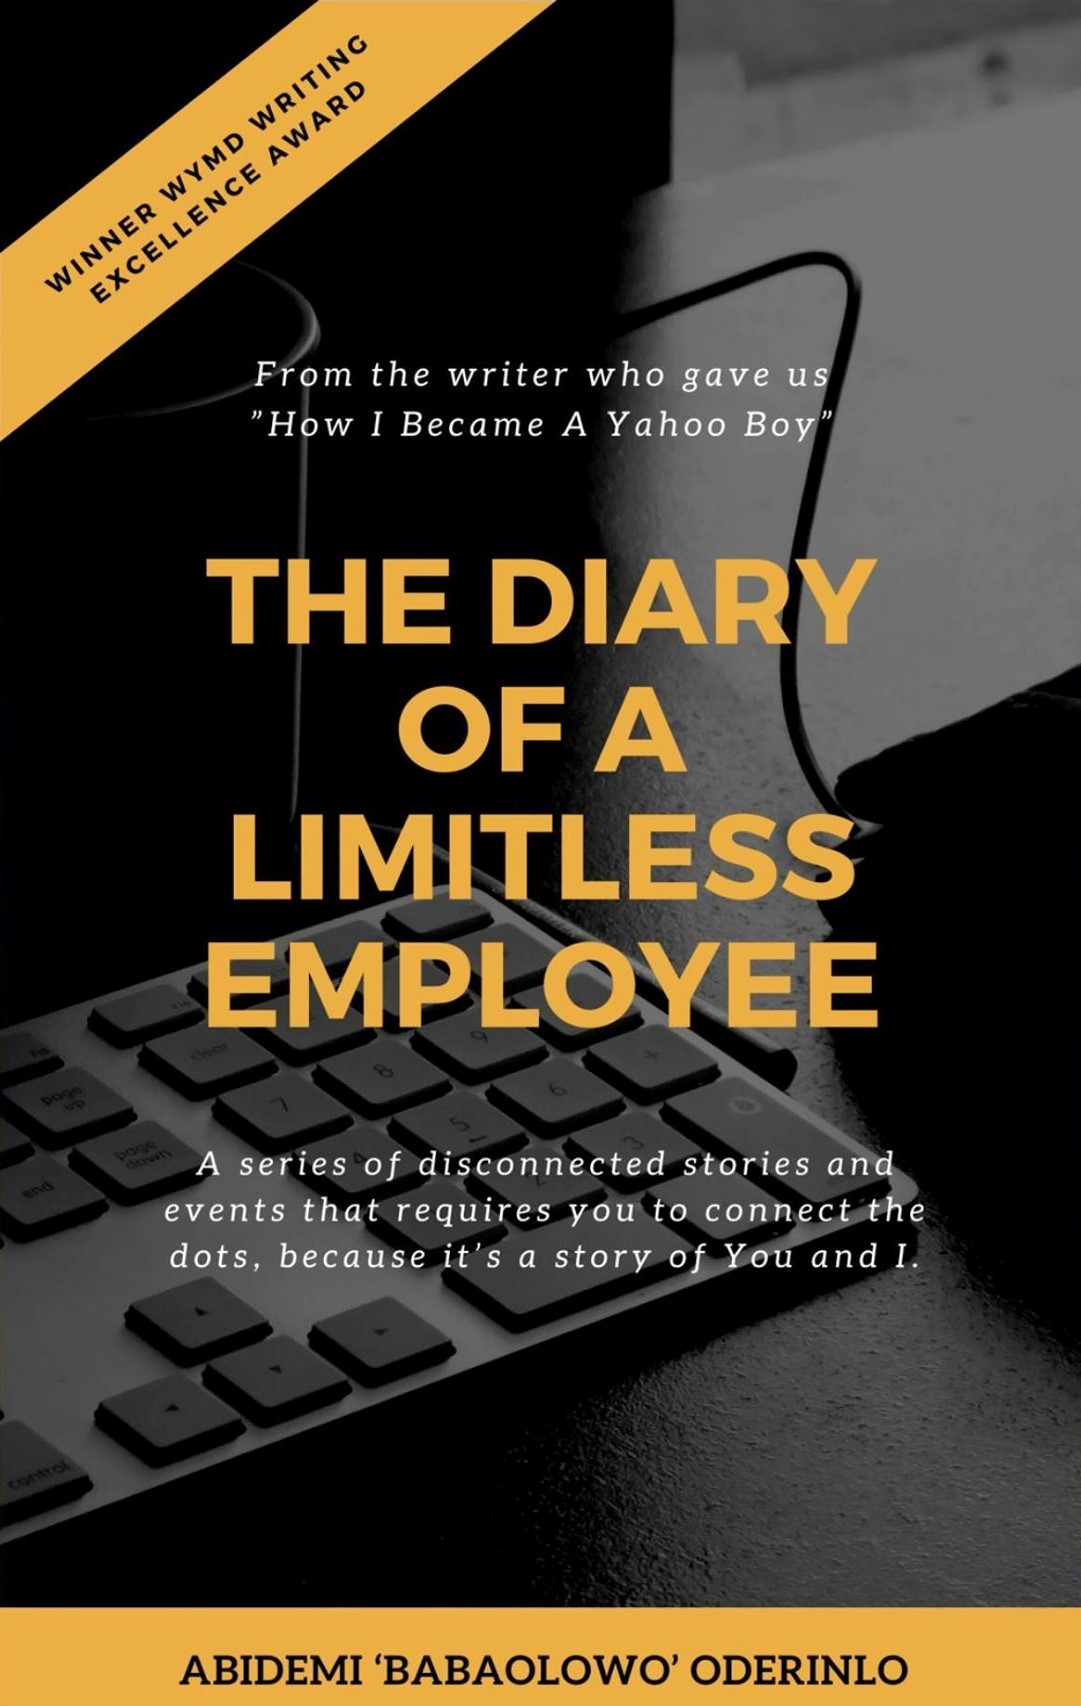 Diary of a Limitless Employee